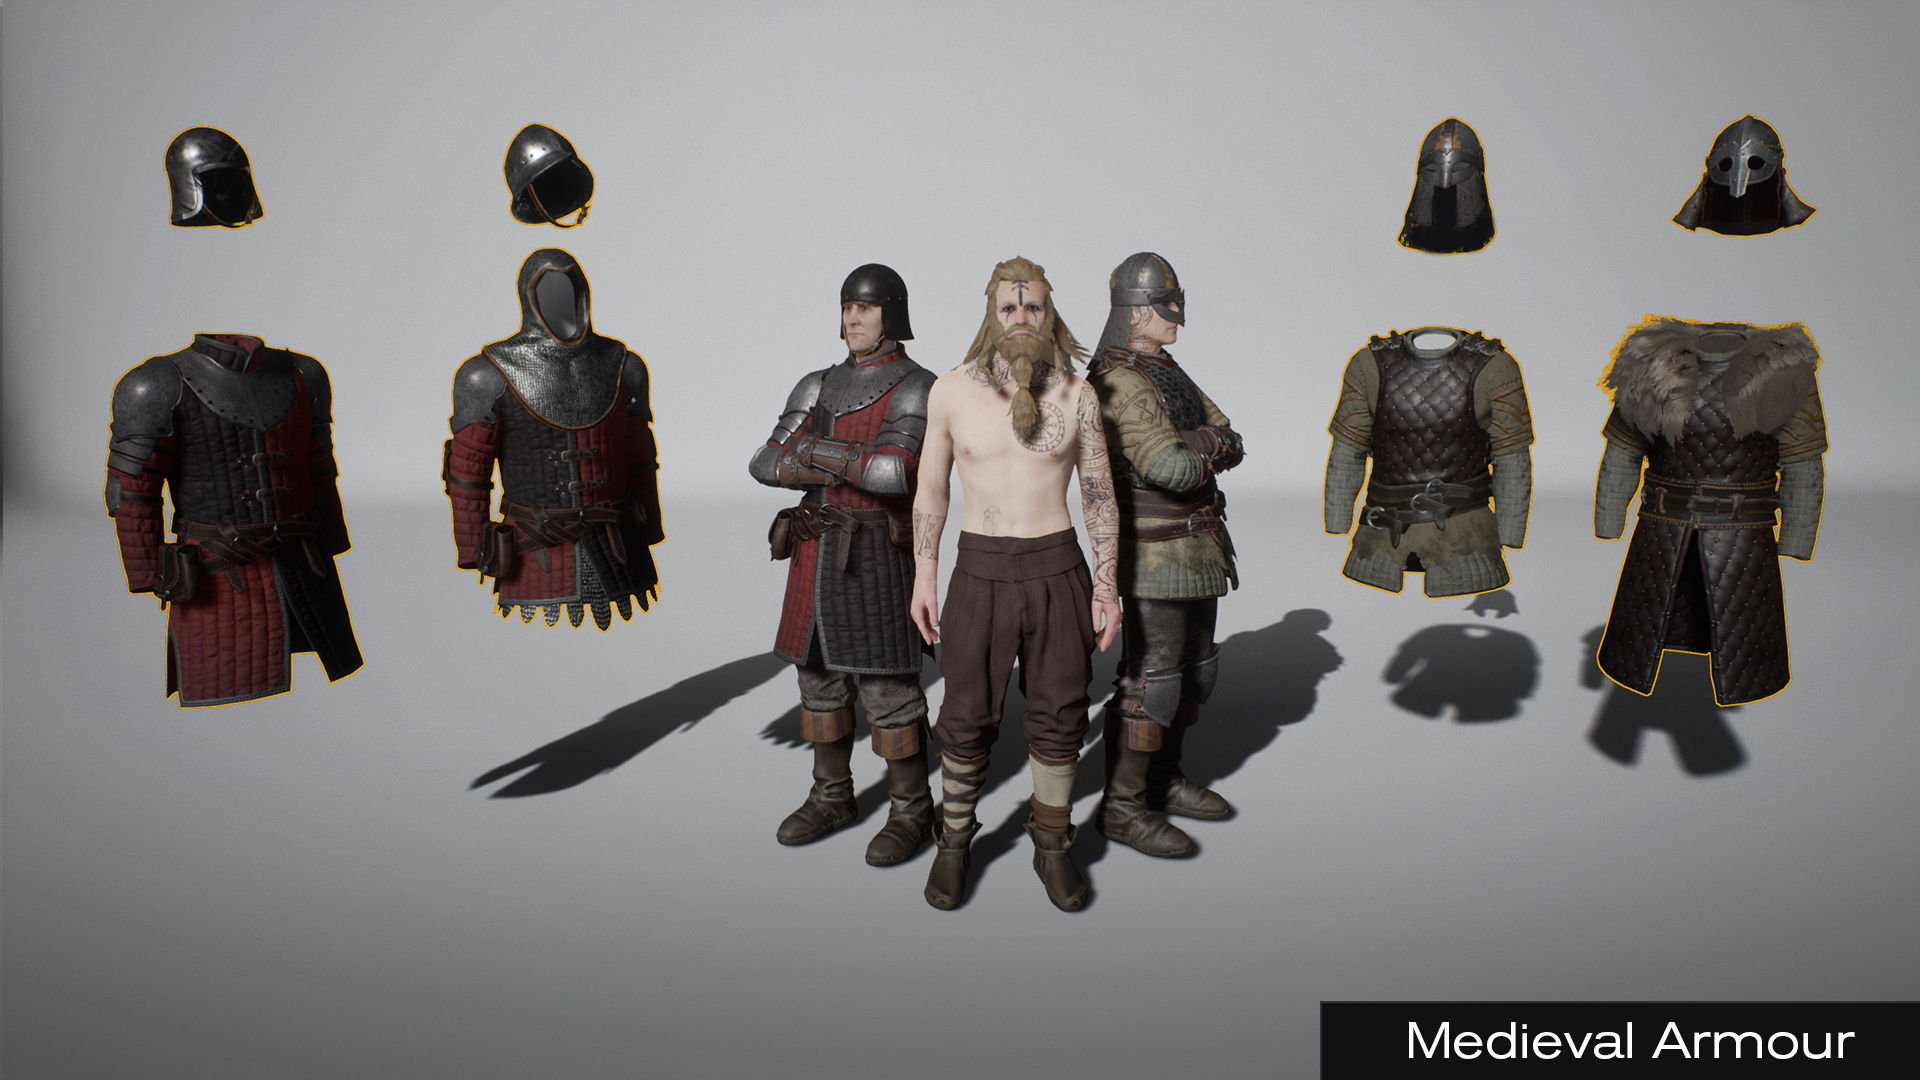 Medieval Armour by polyphoria in Characters - UE4 Marketplace